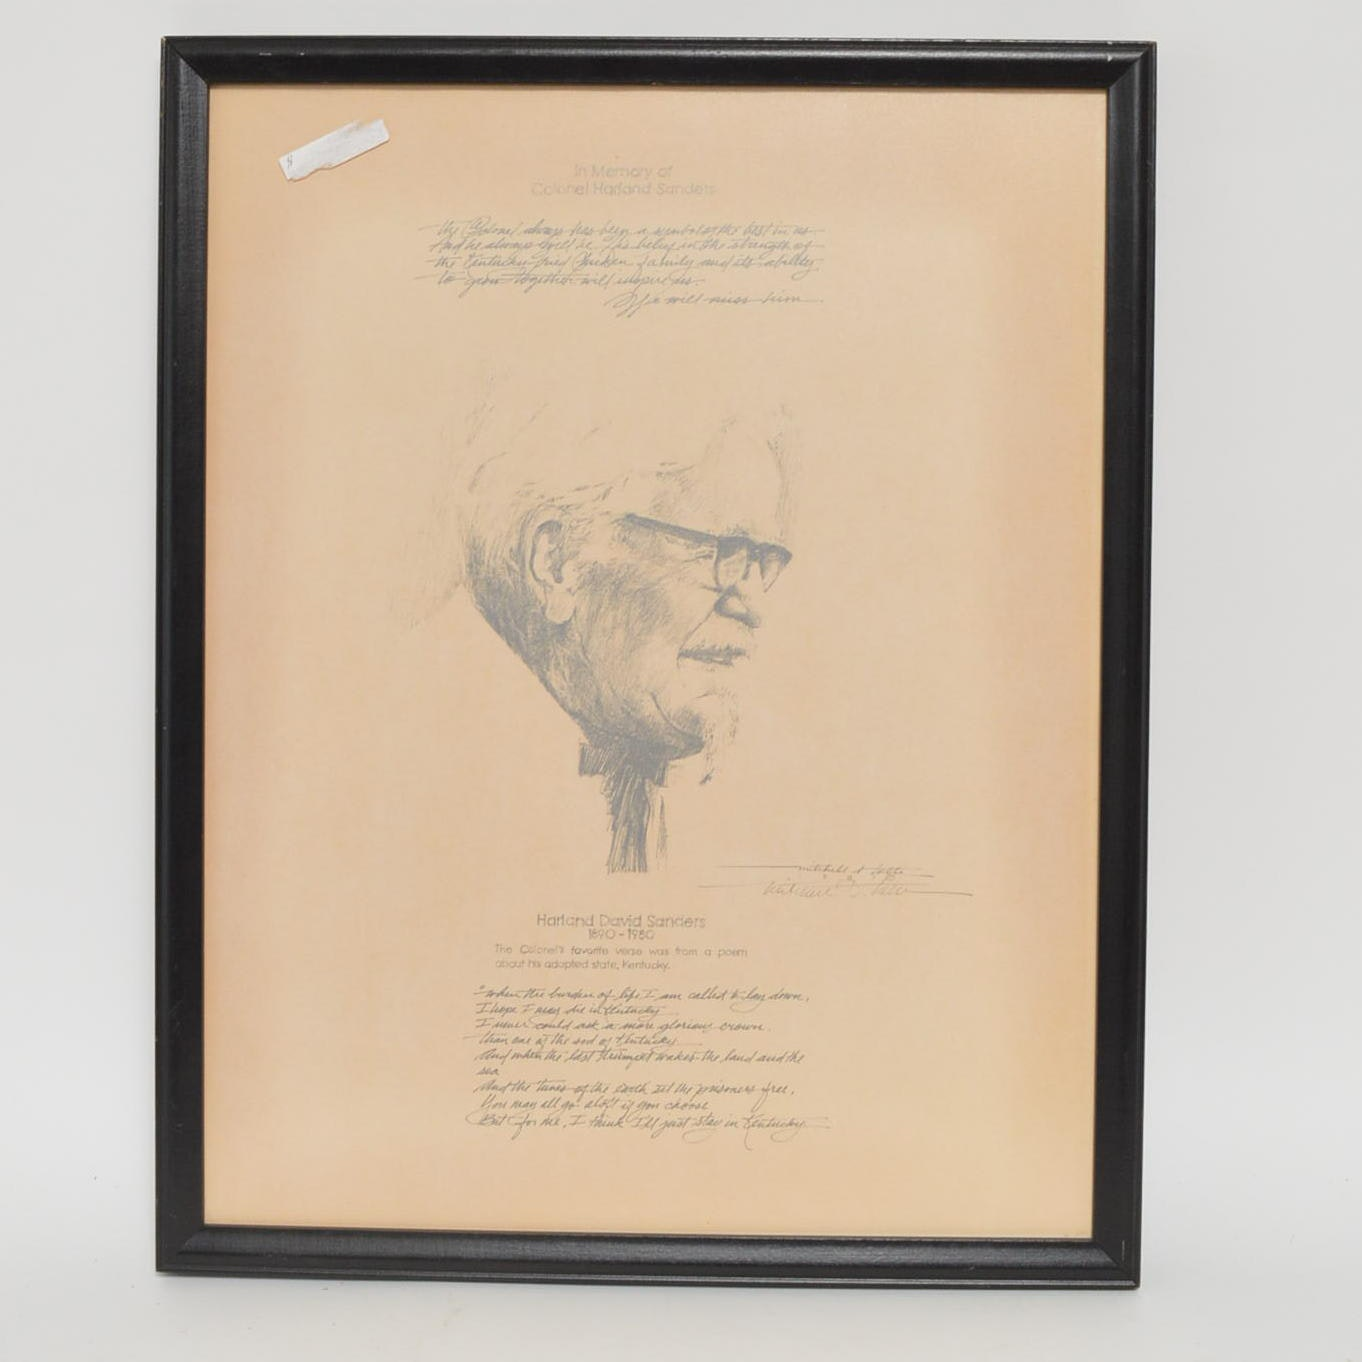 "Mitchell Tolle Offset Lithograph ""Harland David Sanders"""